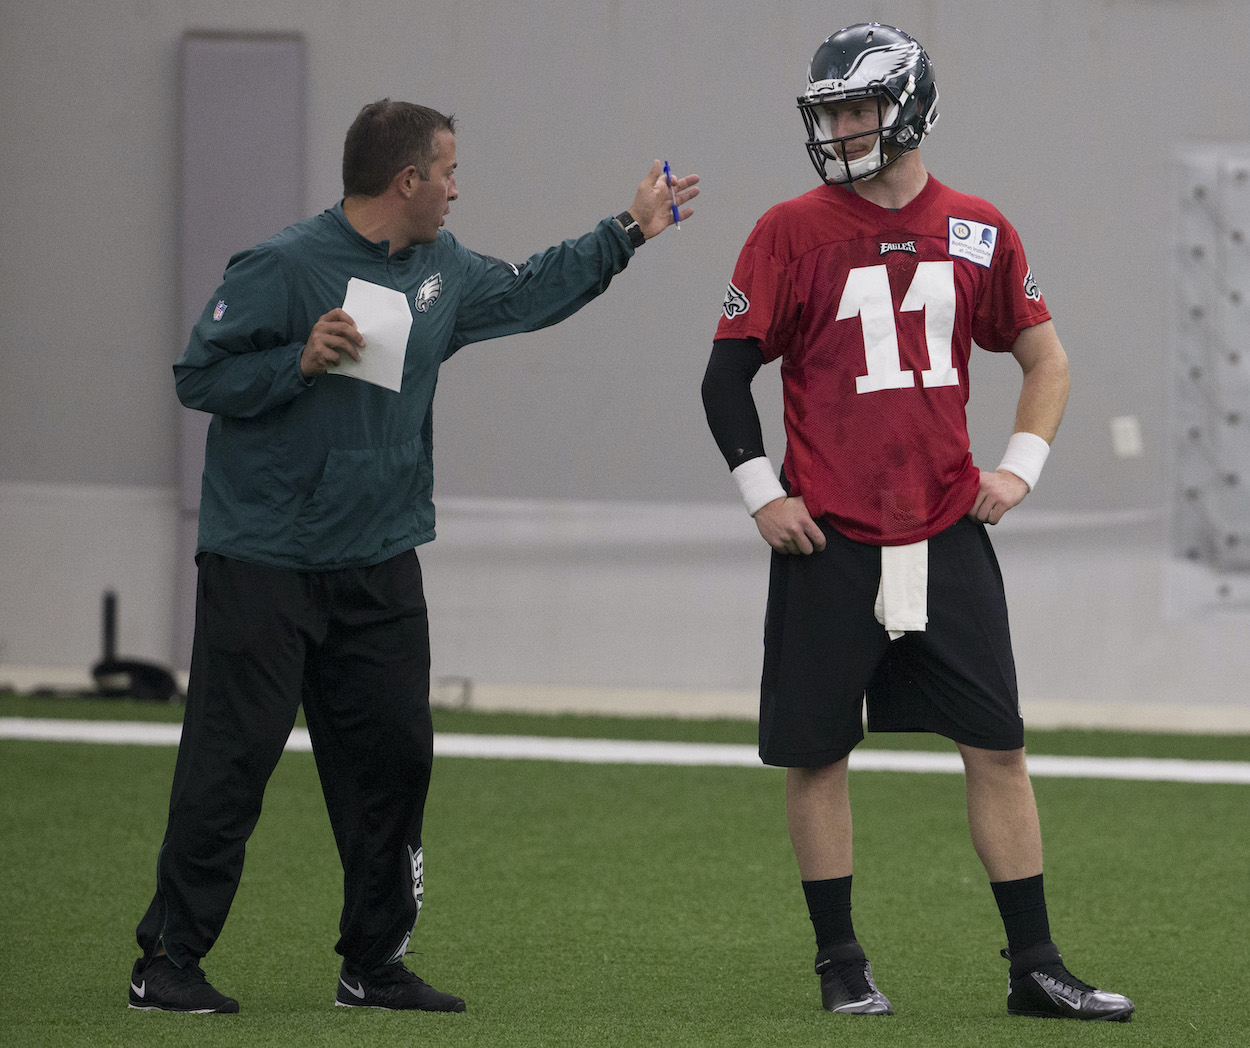 The Chicago Bears May Have Just Hinted at an Impending Carson Wentz Trade With Their Curious Coaching Decision